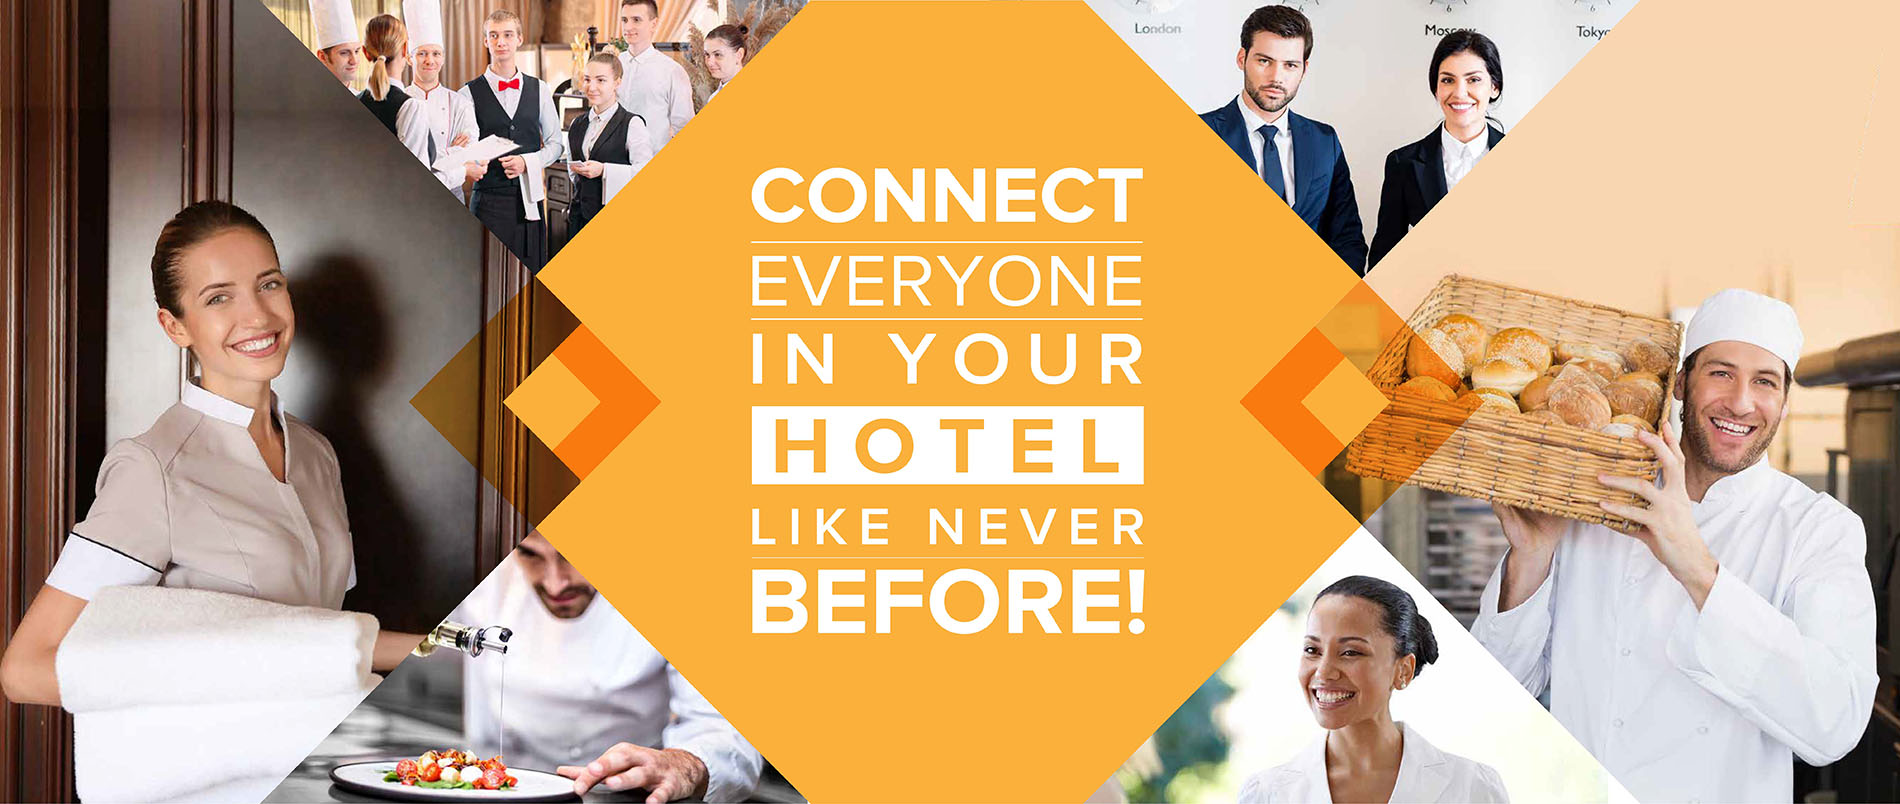 Connect everyone in your Hotel like never before